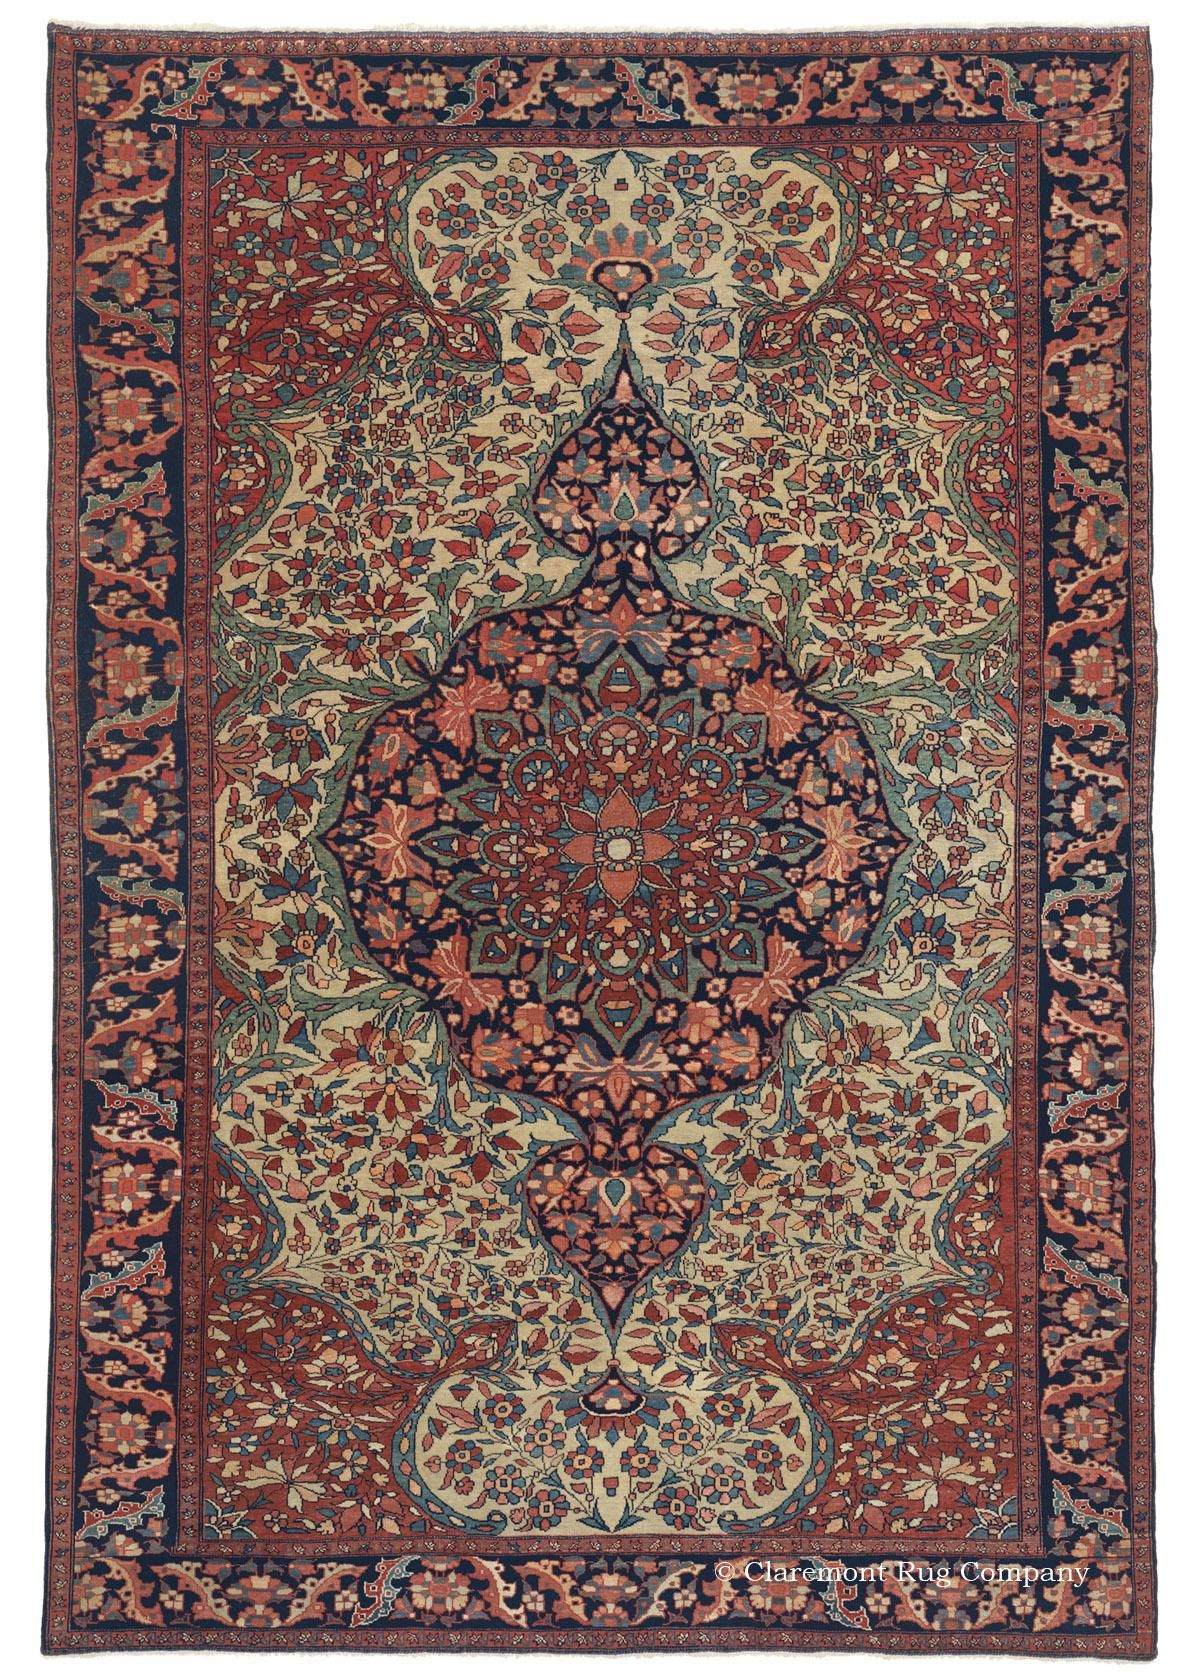 Ferahan Sarouk West Central Persian 4ft 6in X 6ft 7in Circa 1875 Carpete Tapetes